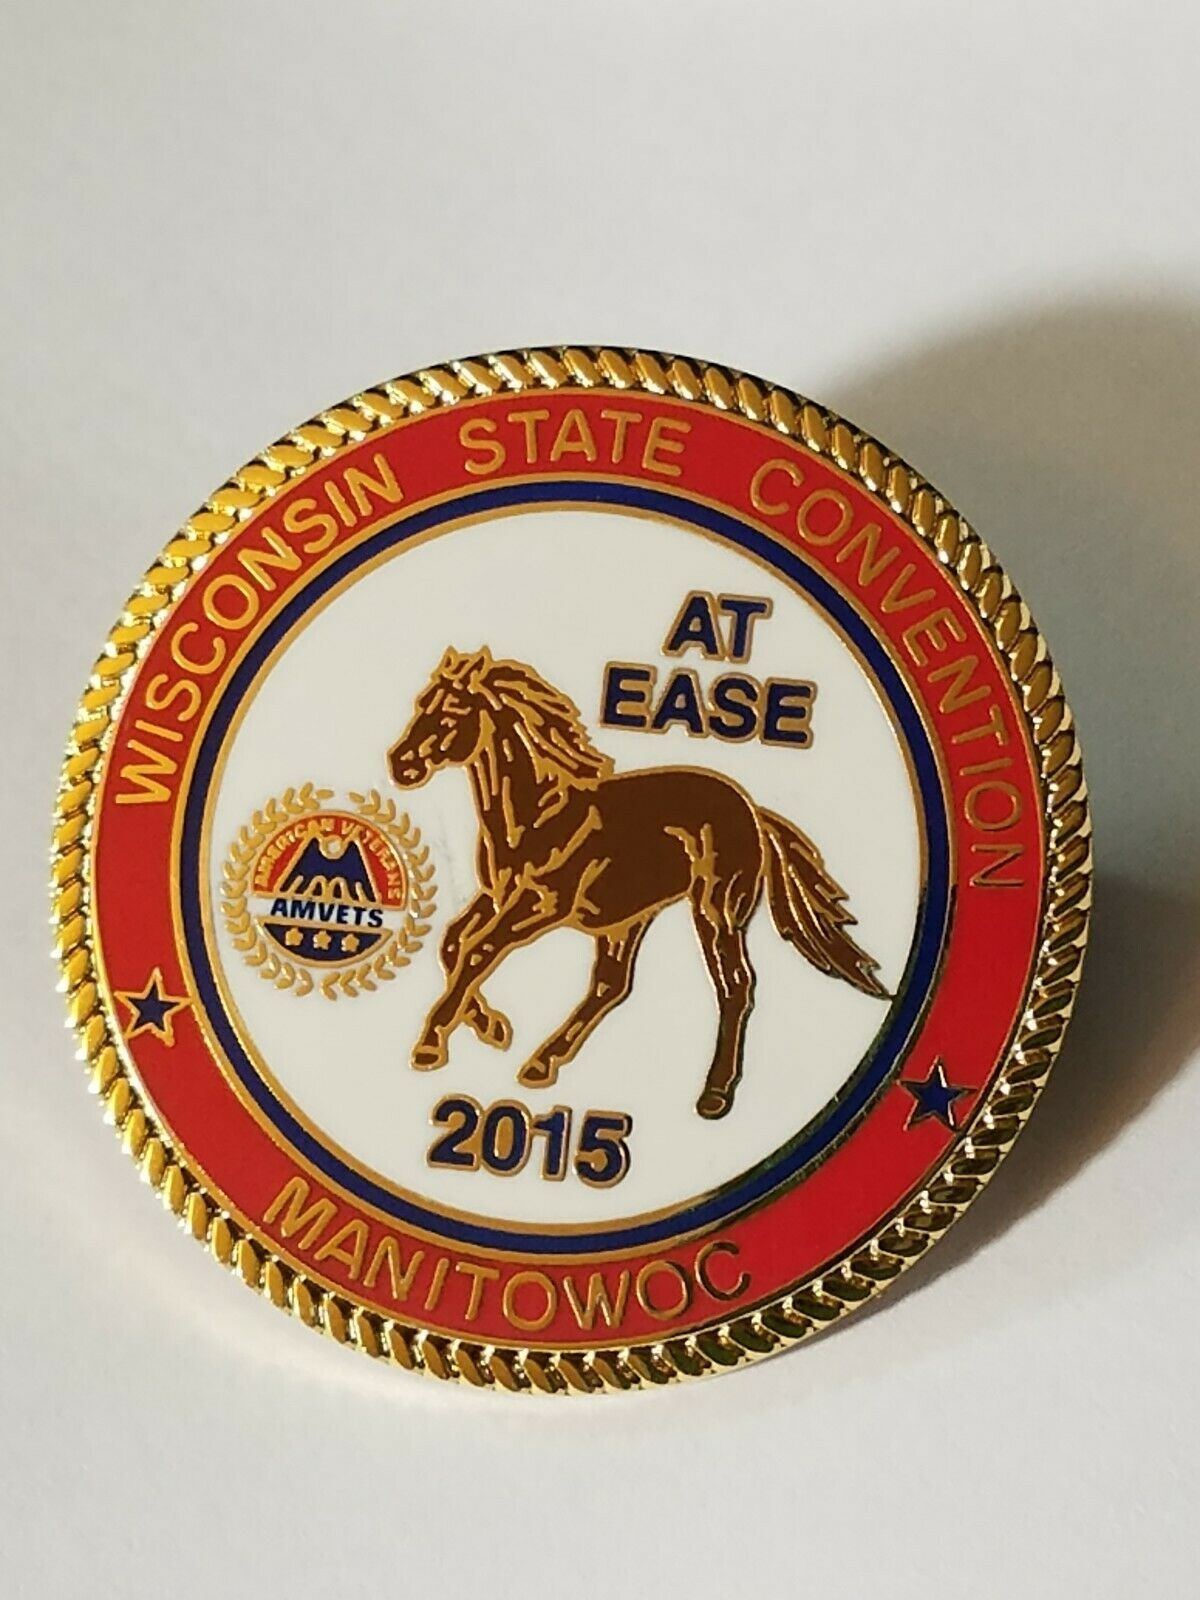 VINTAGE AMVETS WISCONSIN STATE CONVENTION AT EASE 2015 MANITOWOC Lapel Pin